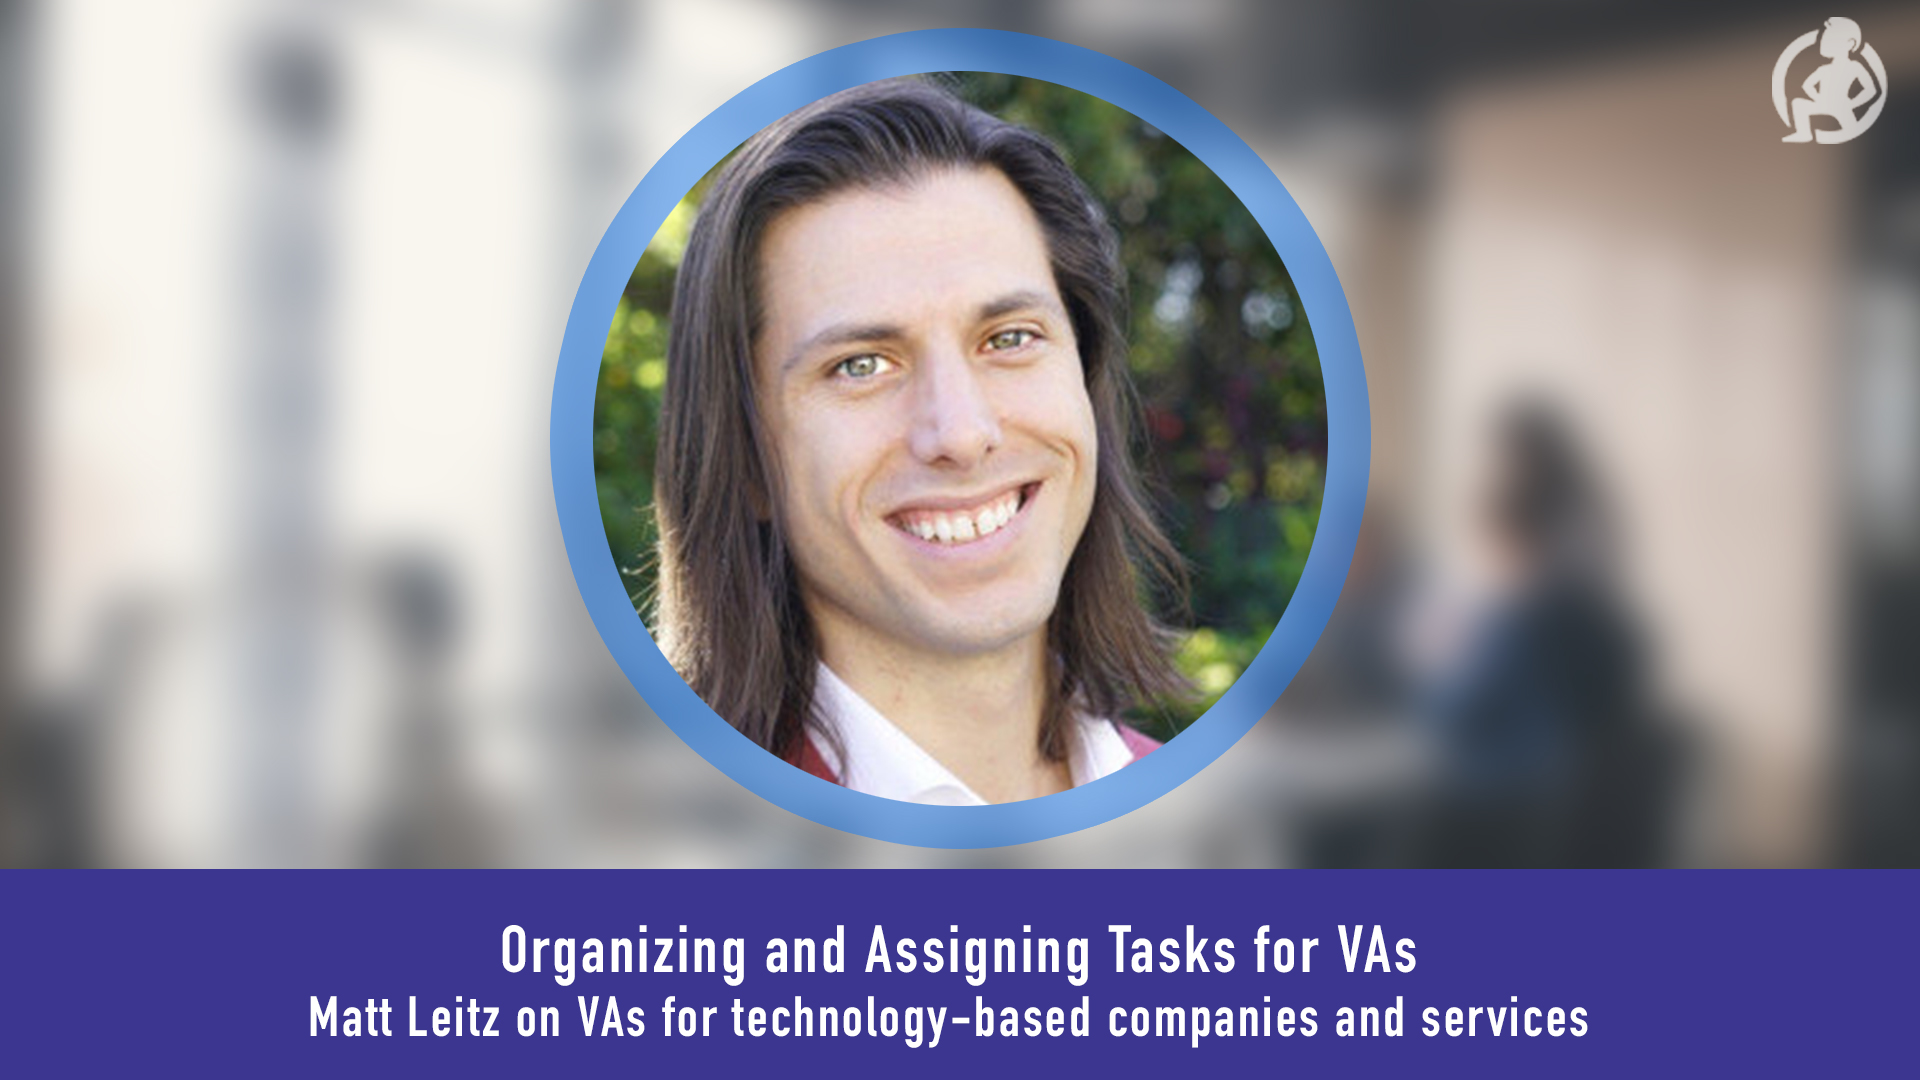 Case Study: Organizing and Assigning Tasks for VAs – Matt Leitz on VAs for Technology-Based Companies and Services